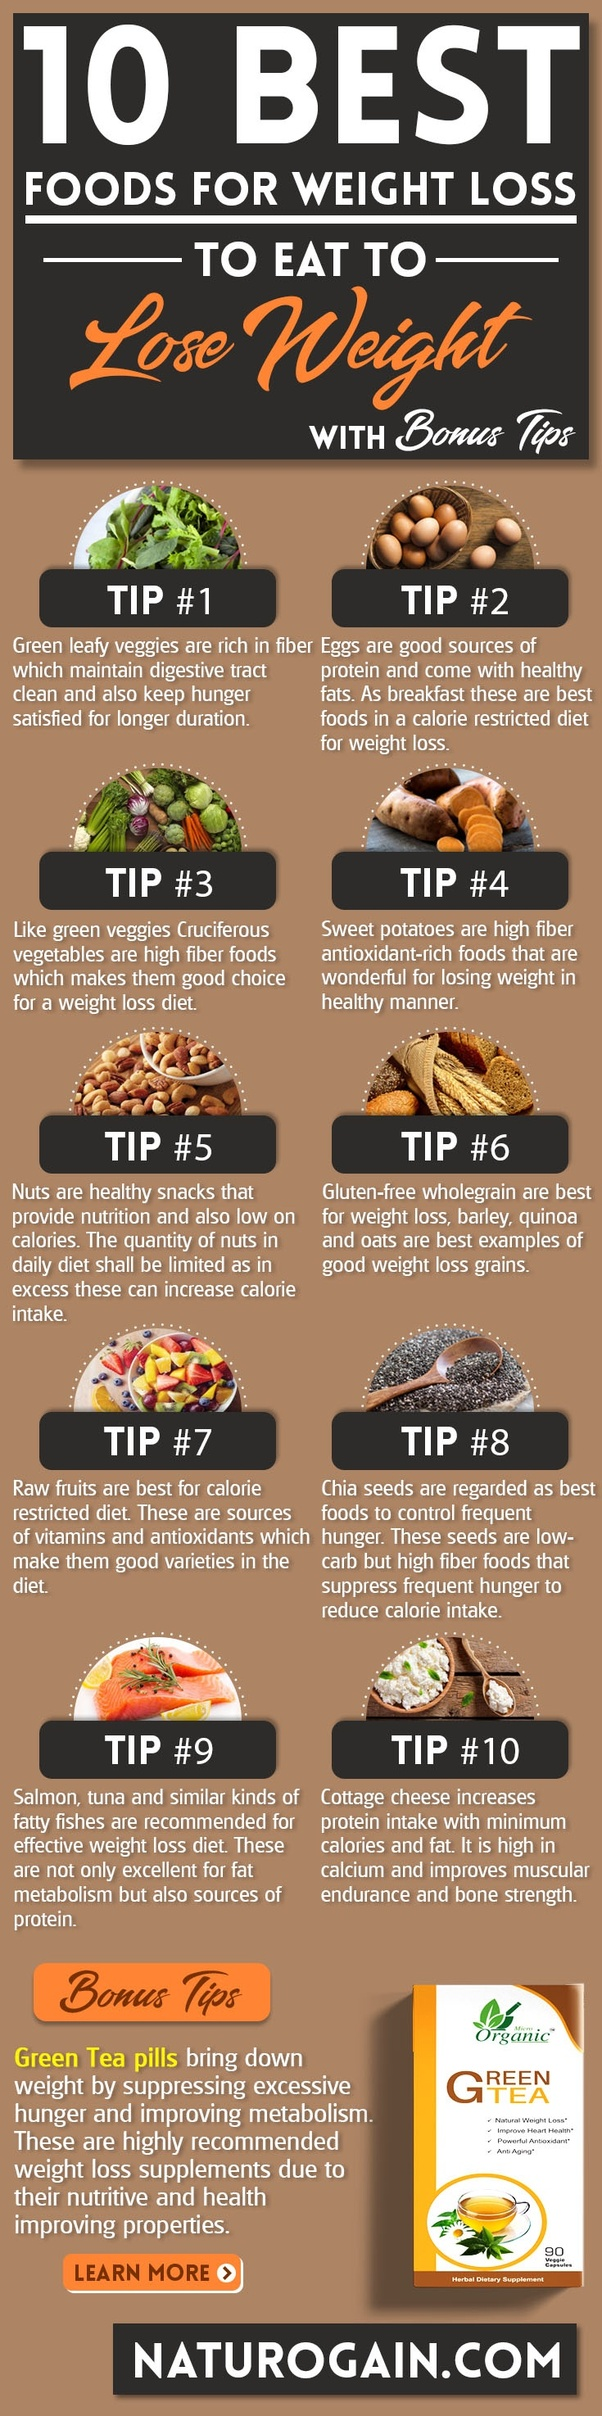 whats the best food to lose weight